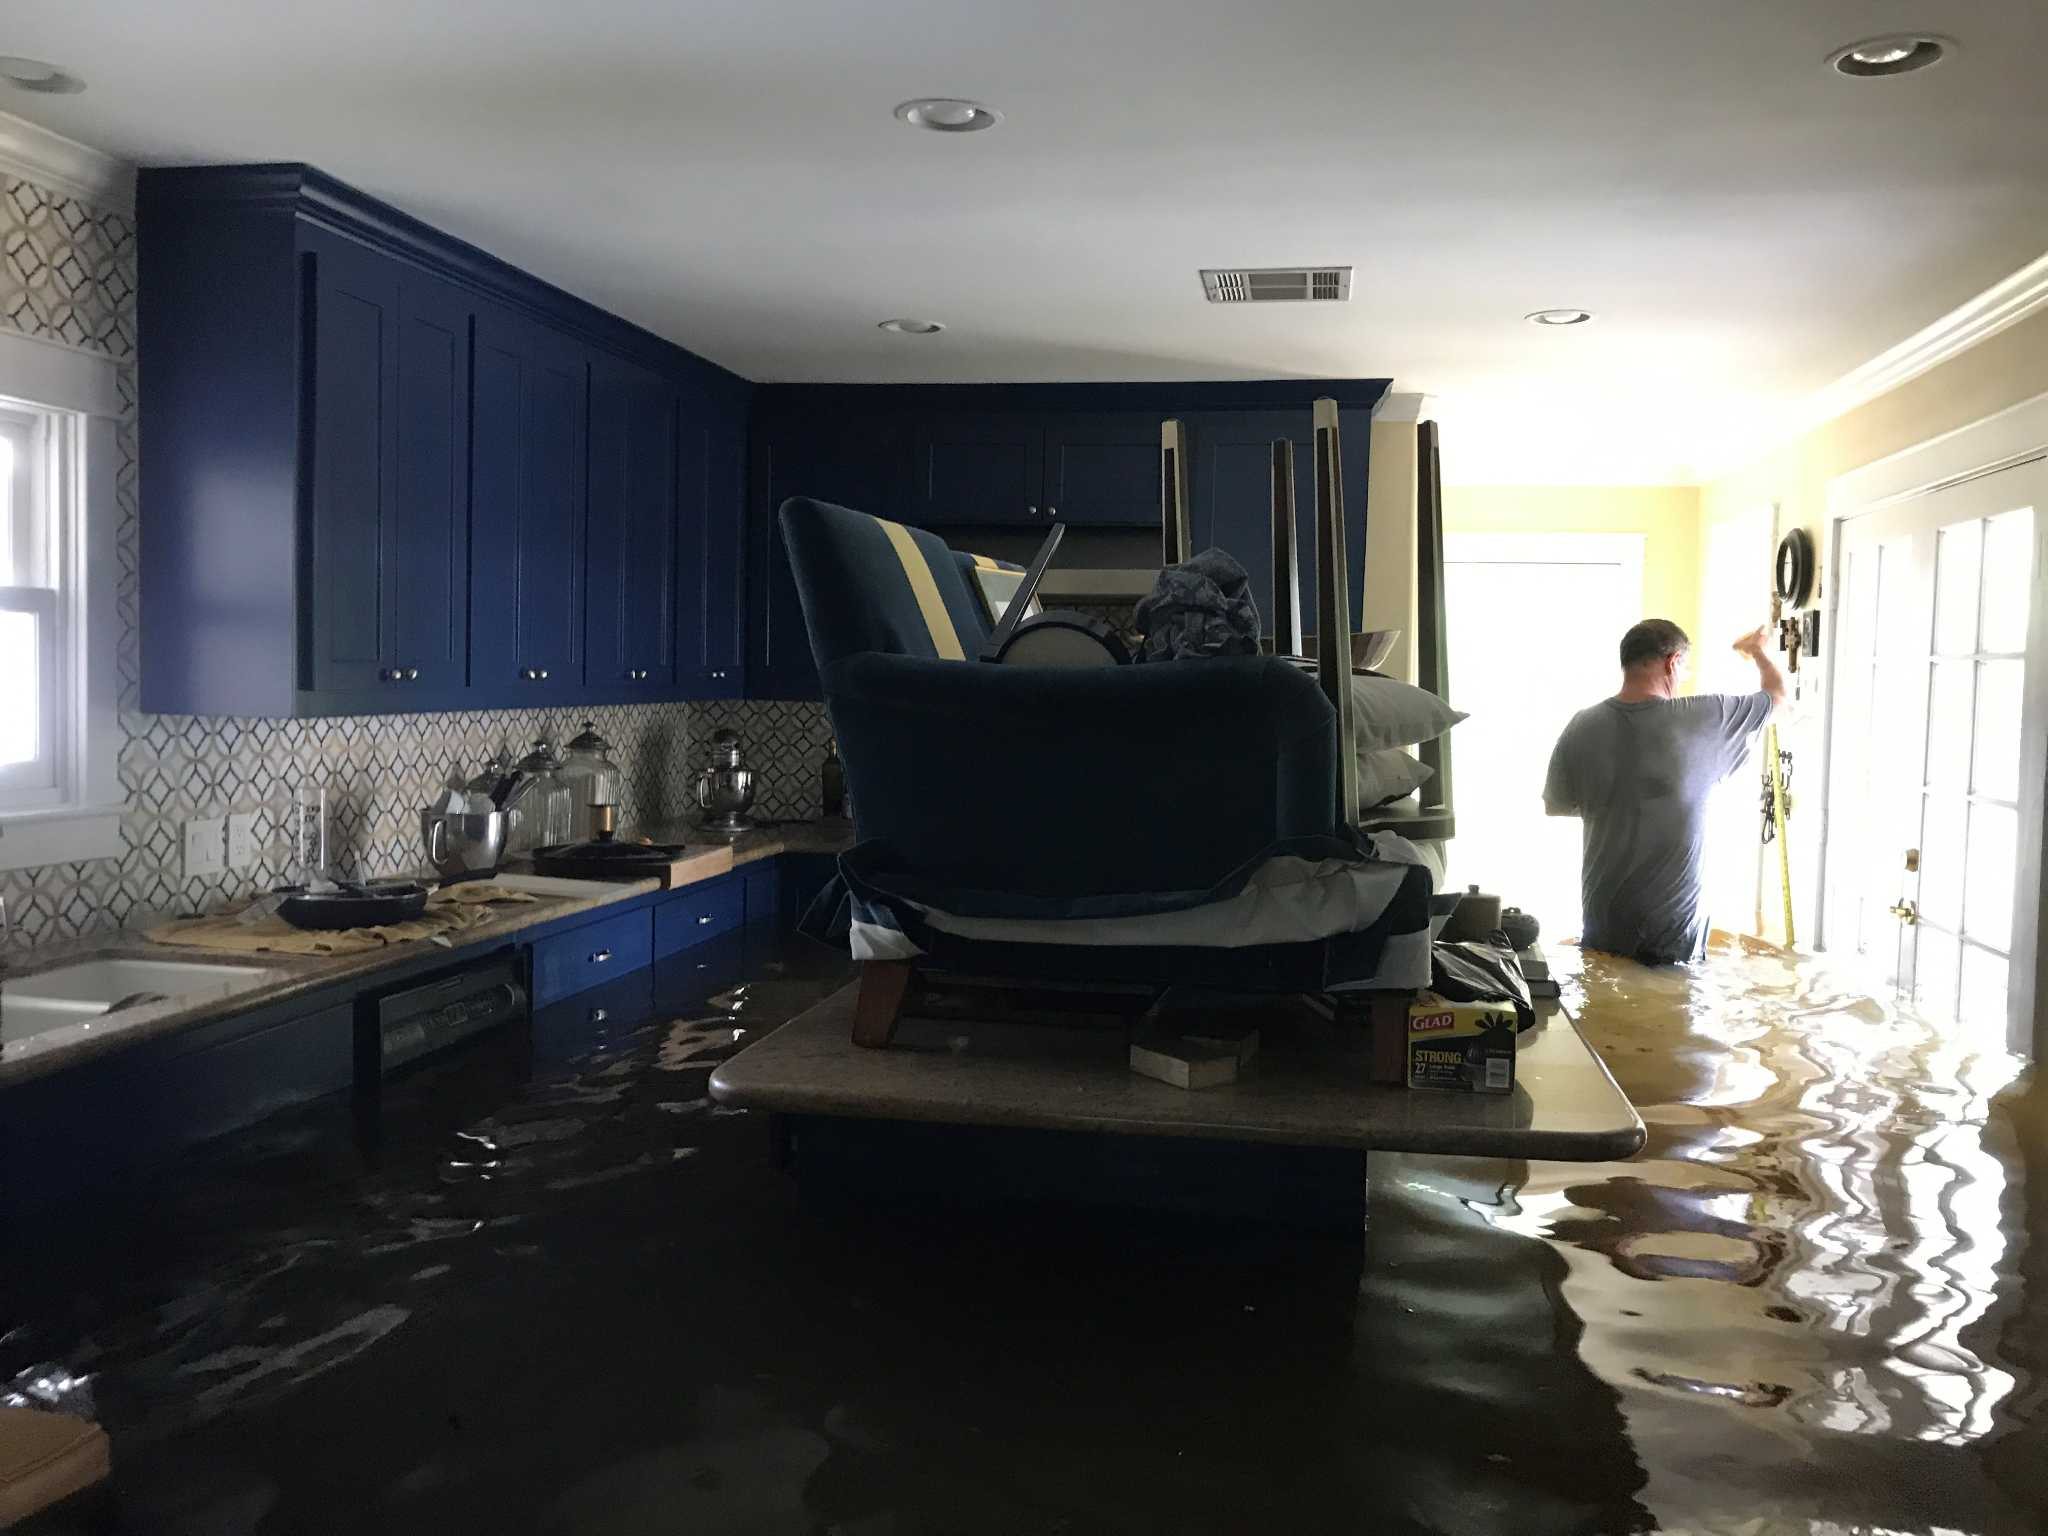 FEMA looks to buy out homes flooded by Hurricane Harvey ... on housing floor plans, 400 sq ft studio floor plans, home floor plans, police floor plans, nsf floor plans, flood floor plans, fbi floor plans, mediterranean floor plans, bahamas floor plans, eoc floor plans, rv floor plans, fannie mae floor plans, single family floor plans, training floor plans, local floor plans, texas floor plans, fallout shelter floor plans, icc floor plans, southern floor plans,